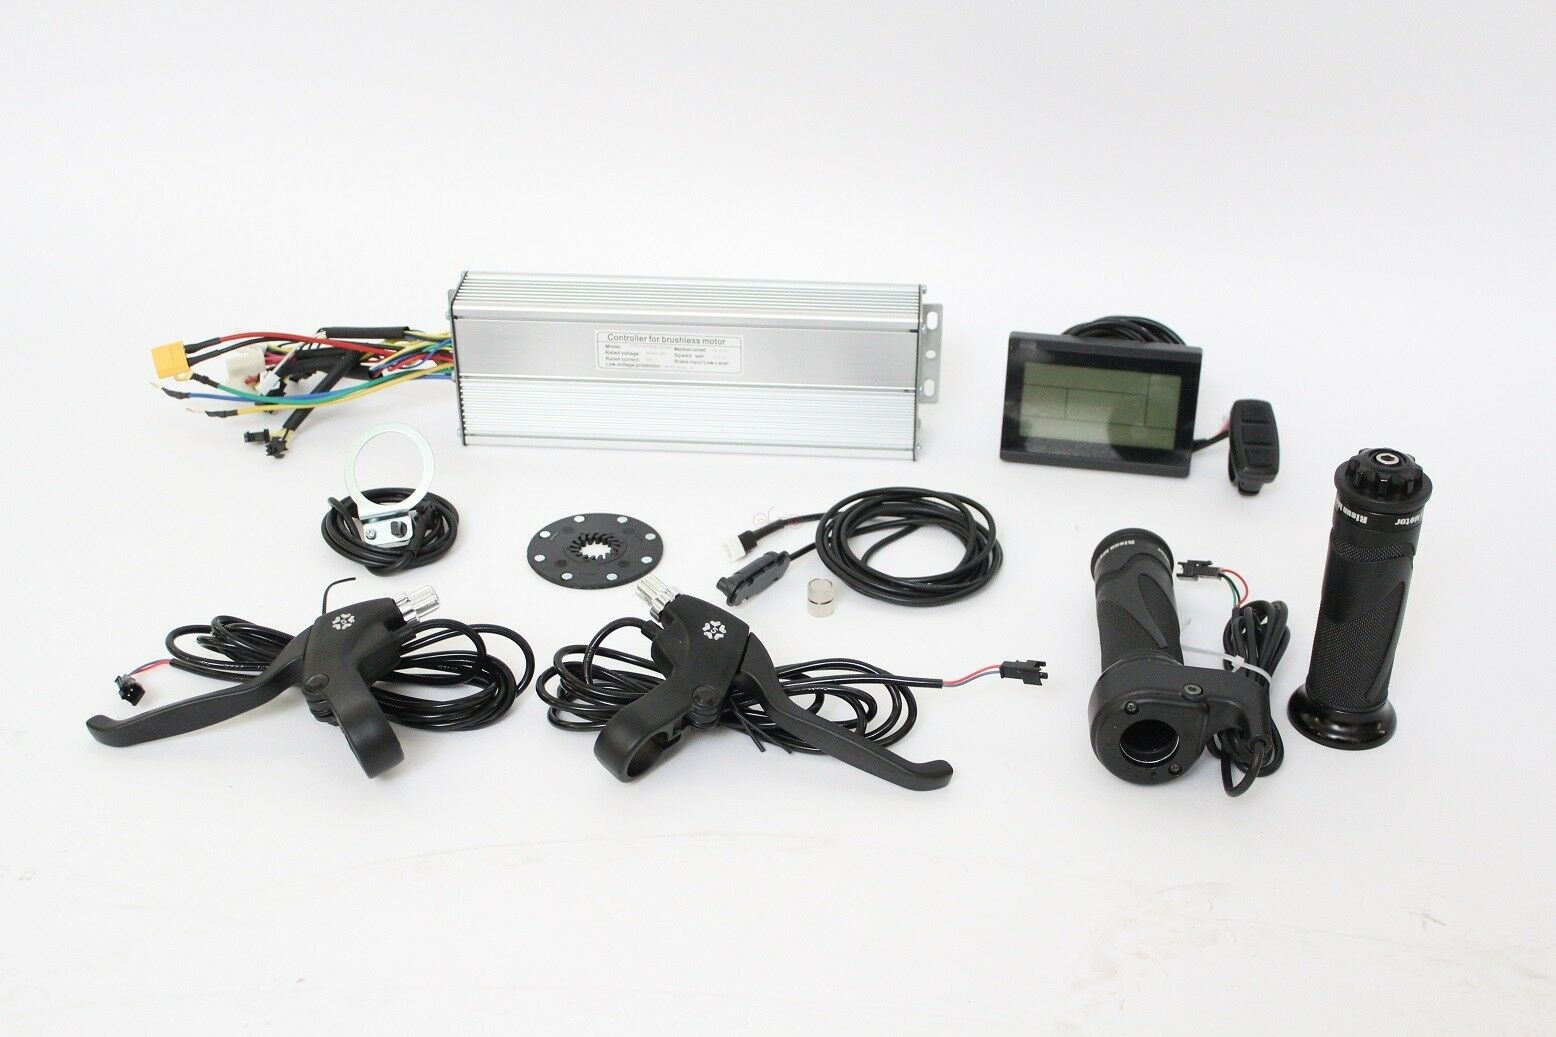 36 48V 500-750W 25A Square Wave Controller+LCD+Thredtle+PAS+Brakes+Speed Sensor   hastened to see